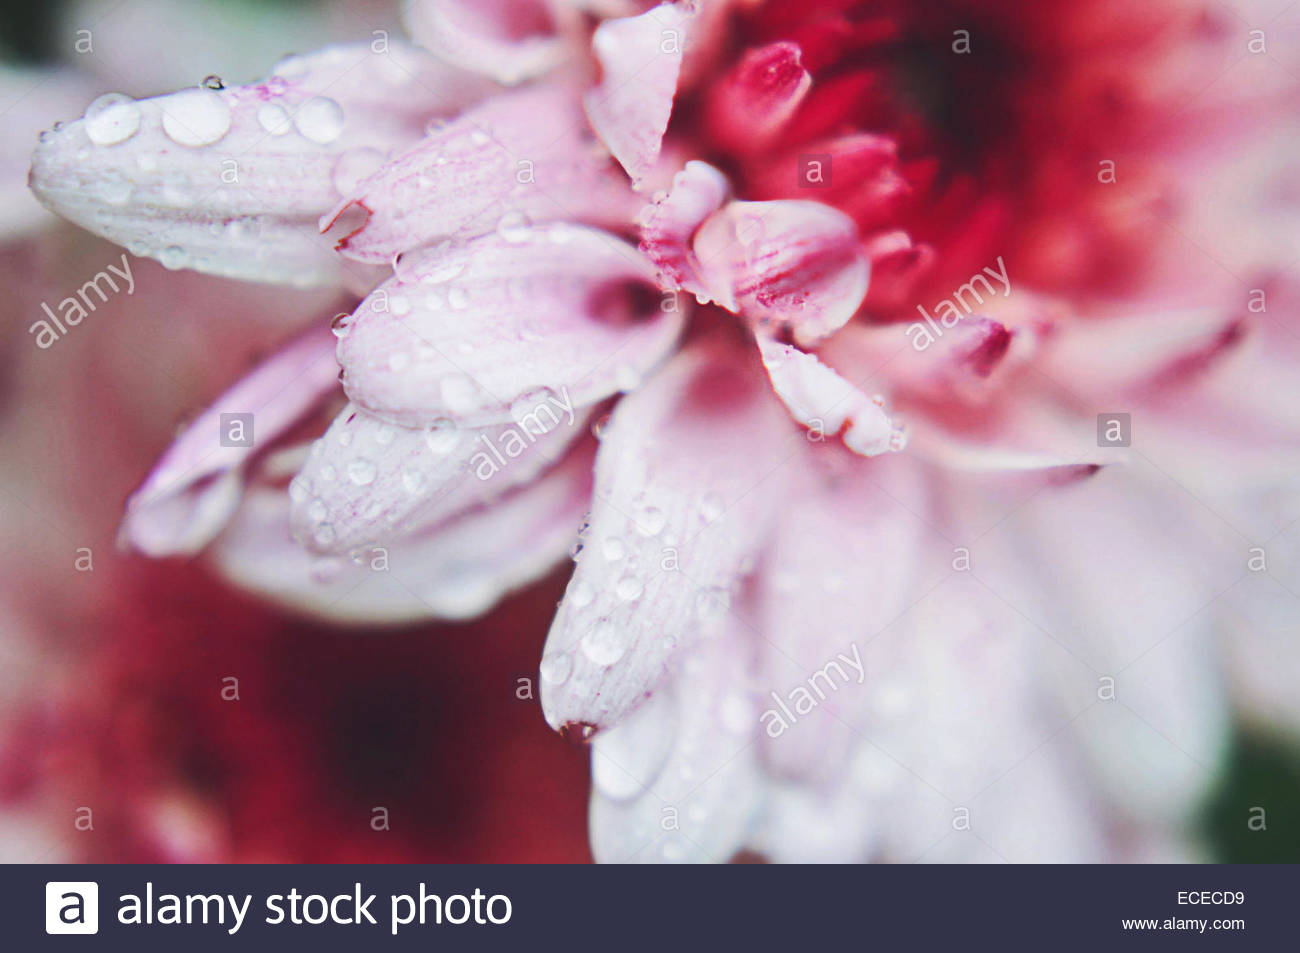 Macro pink chrysanthemum flower with water droplets - Stock Image